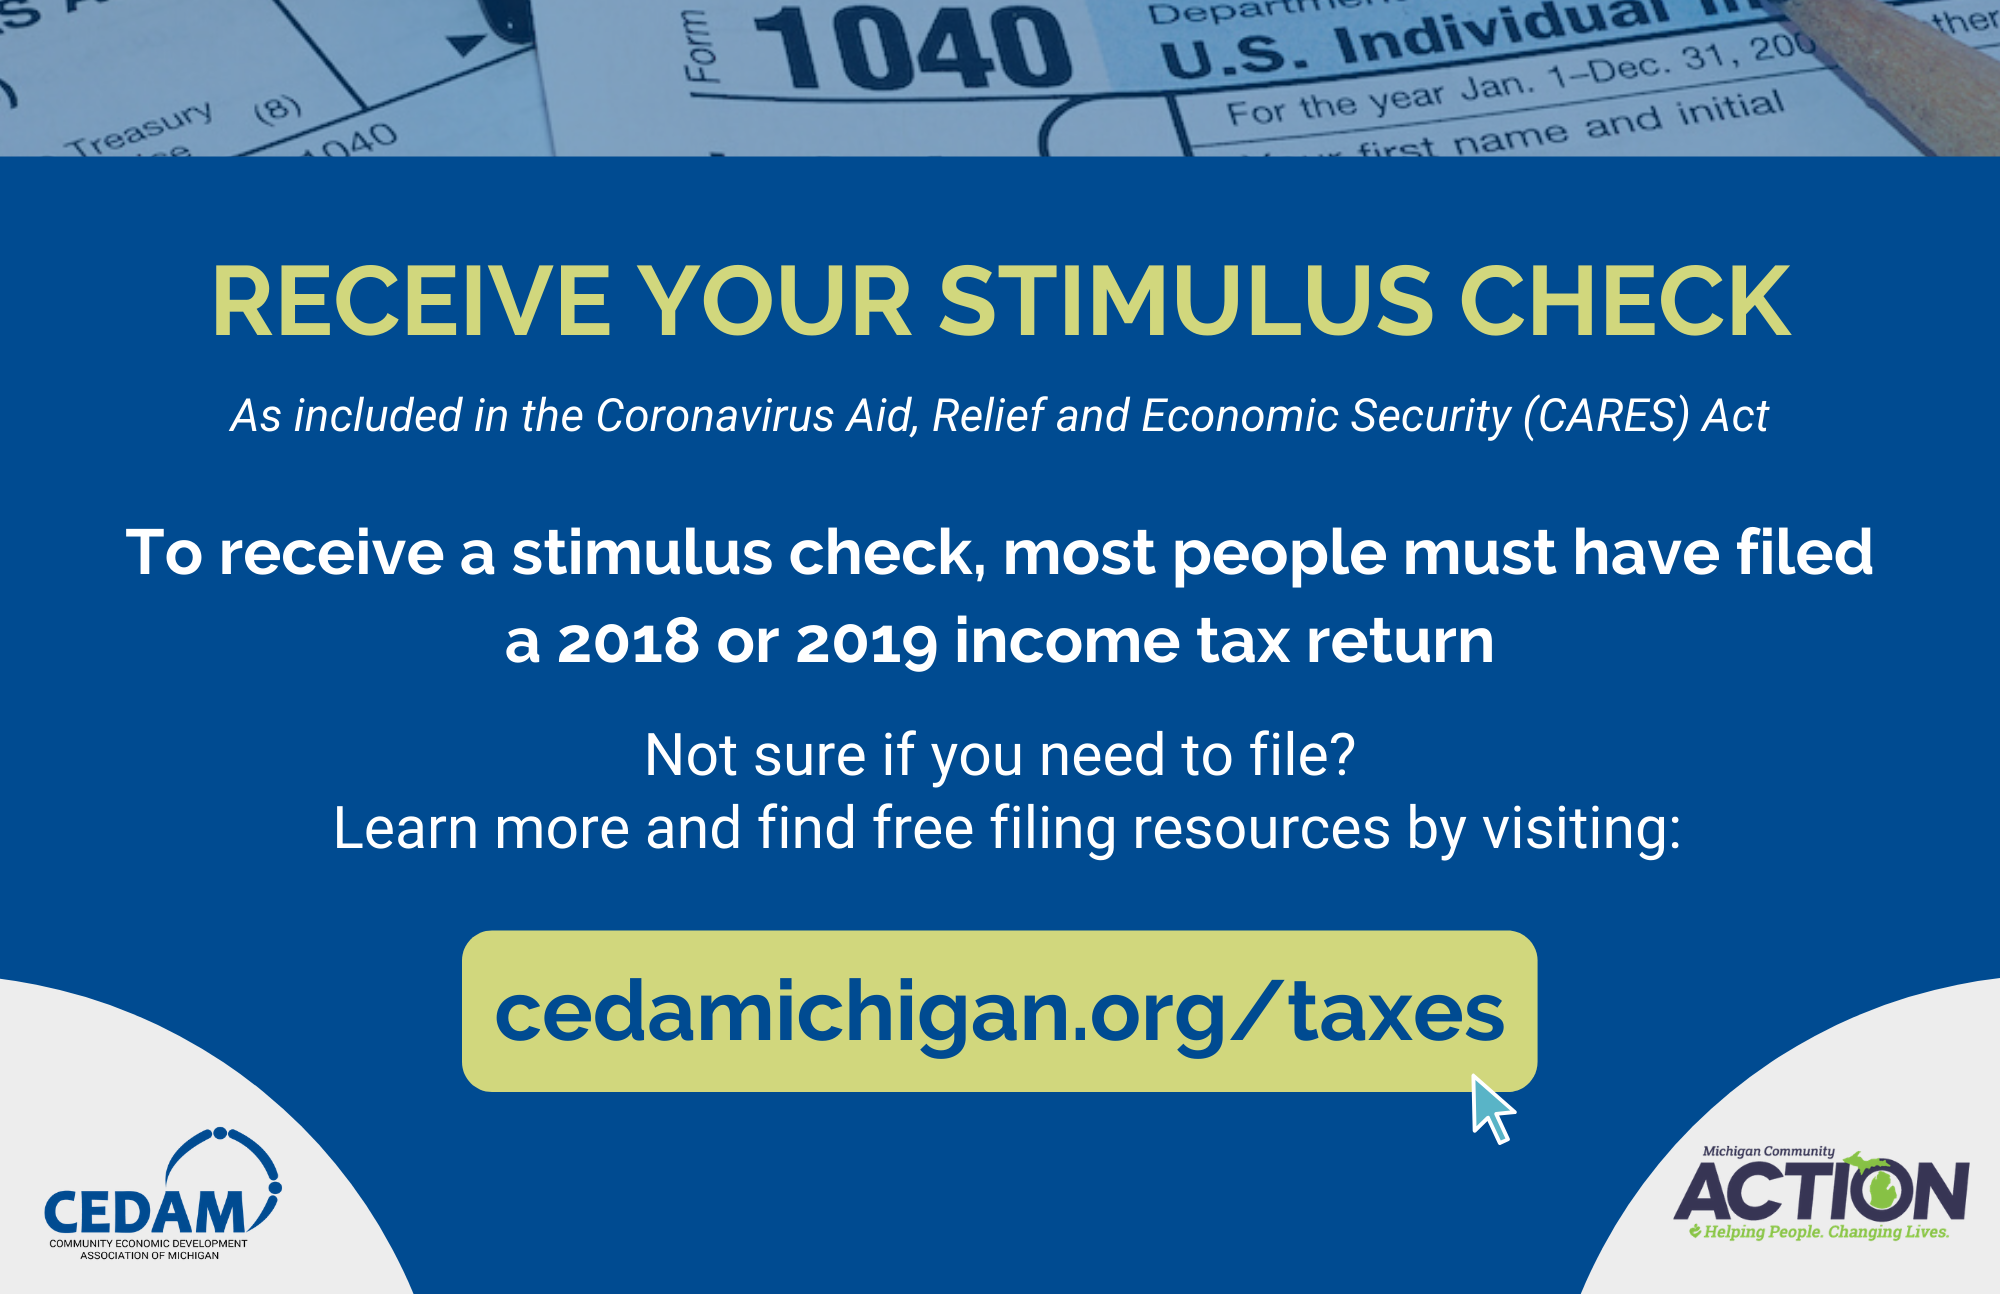 MCA Stimulus Checks CEDAM